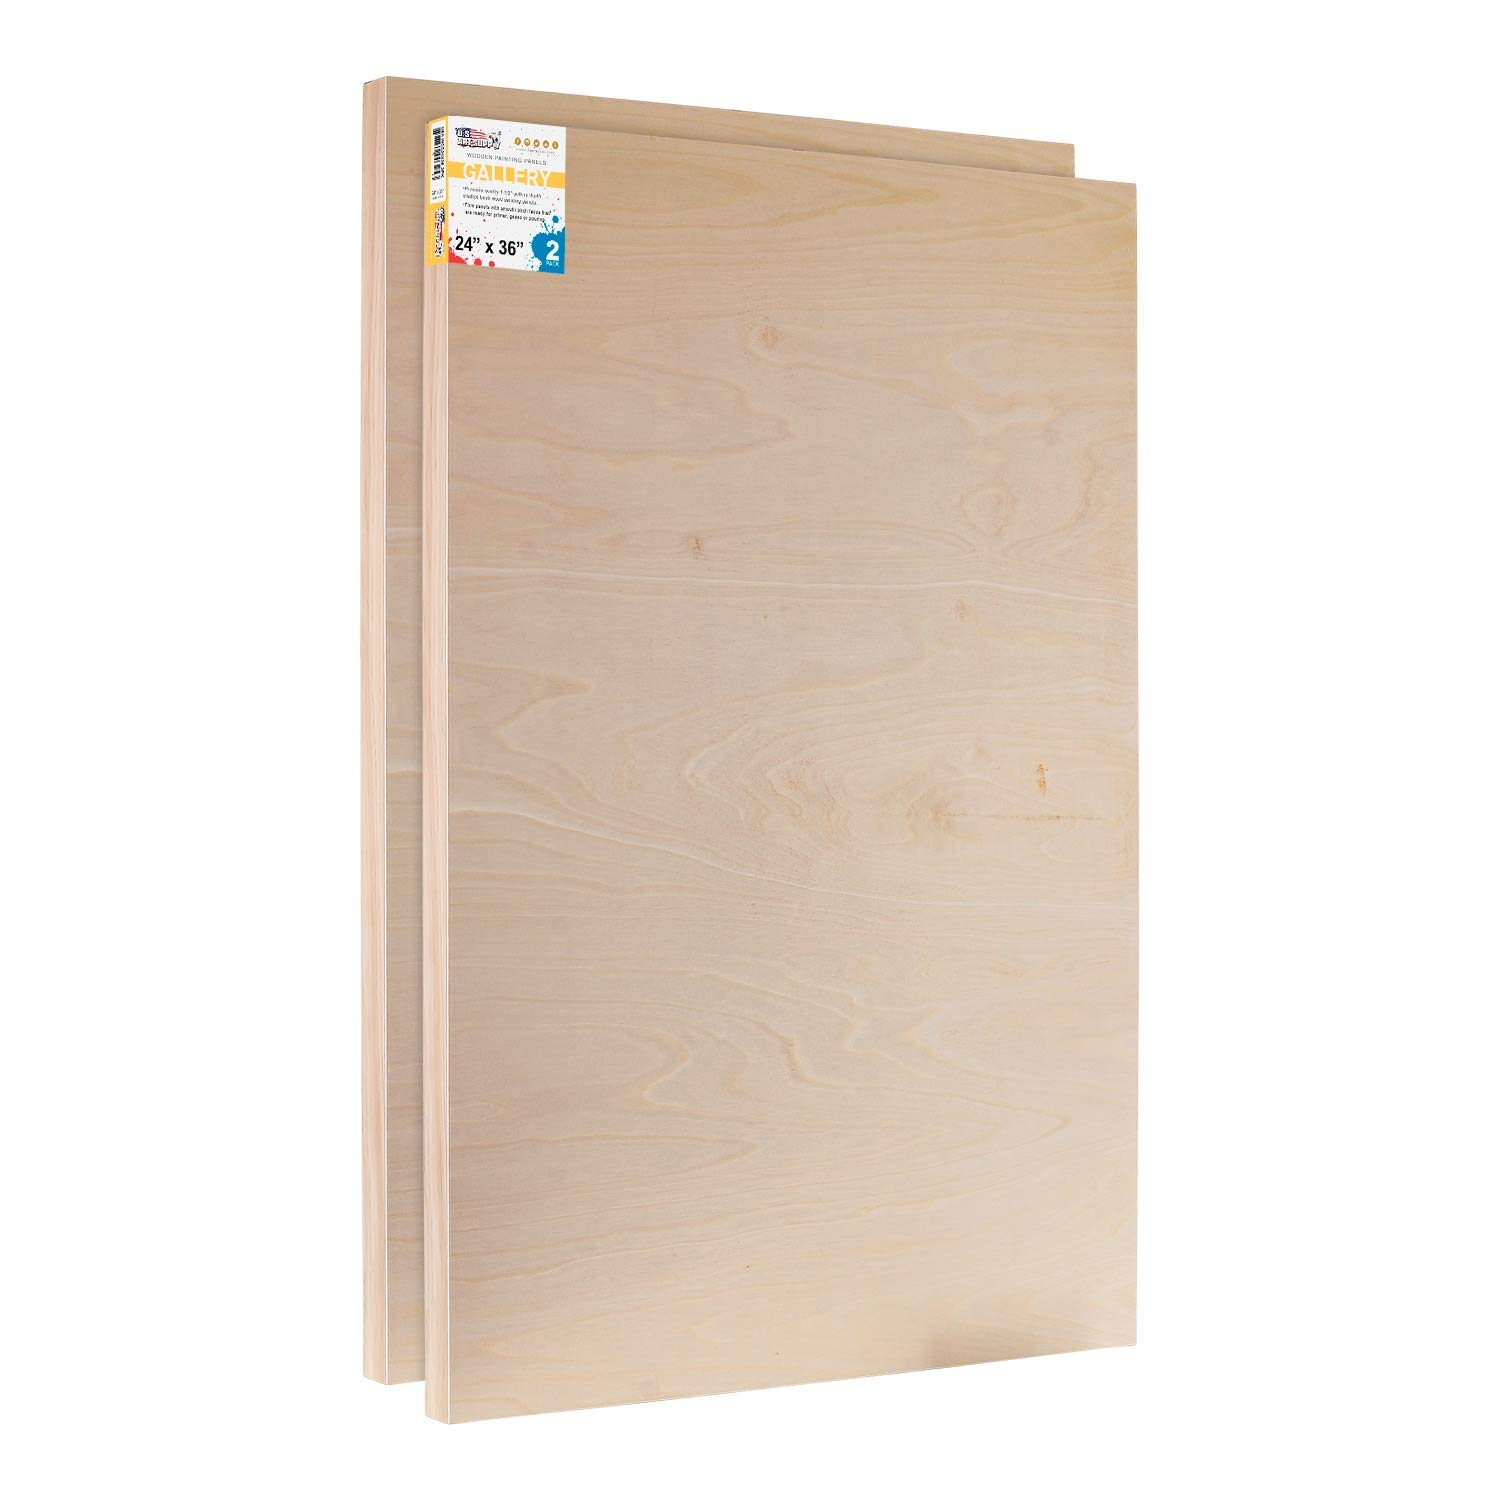 U.S. Art Supply 24'' x 36'' Birch Wood Paint Pouring Panel Boards, Gallery 1-1/2'' Deep Cradle (Pack of 2) - Artist Depth Wooden Wall Canvases - Painting Mixed-Media Craft, Acrylic, Oil, Encaustic by US Art Supply